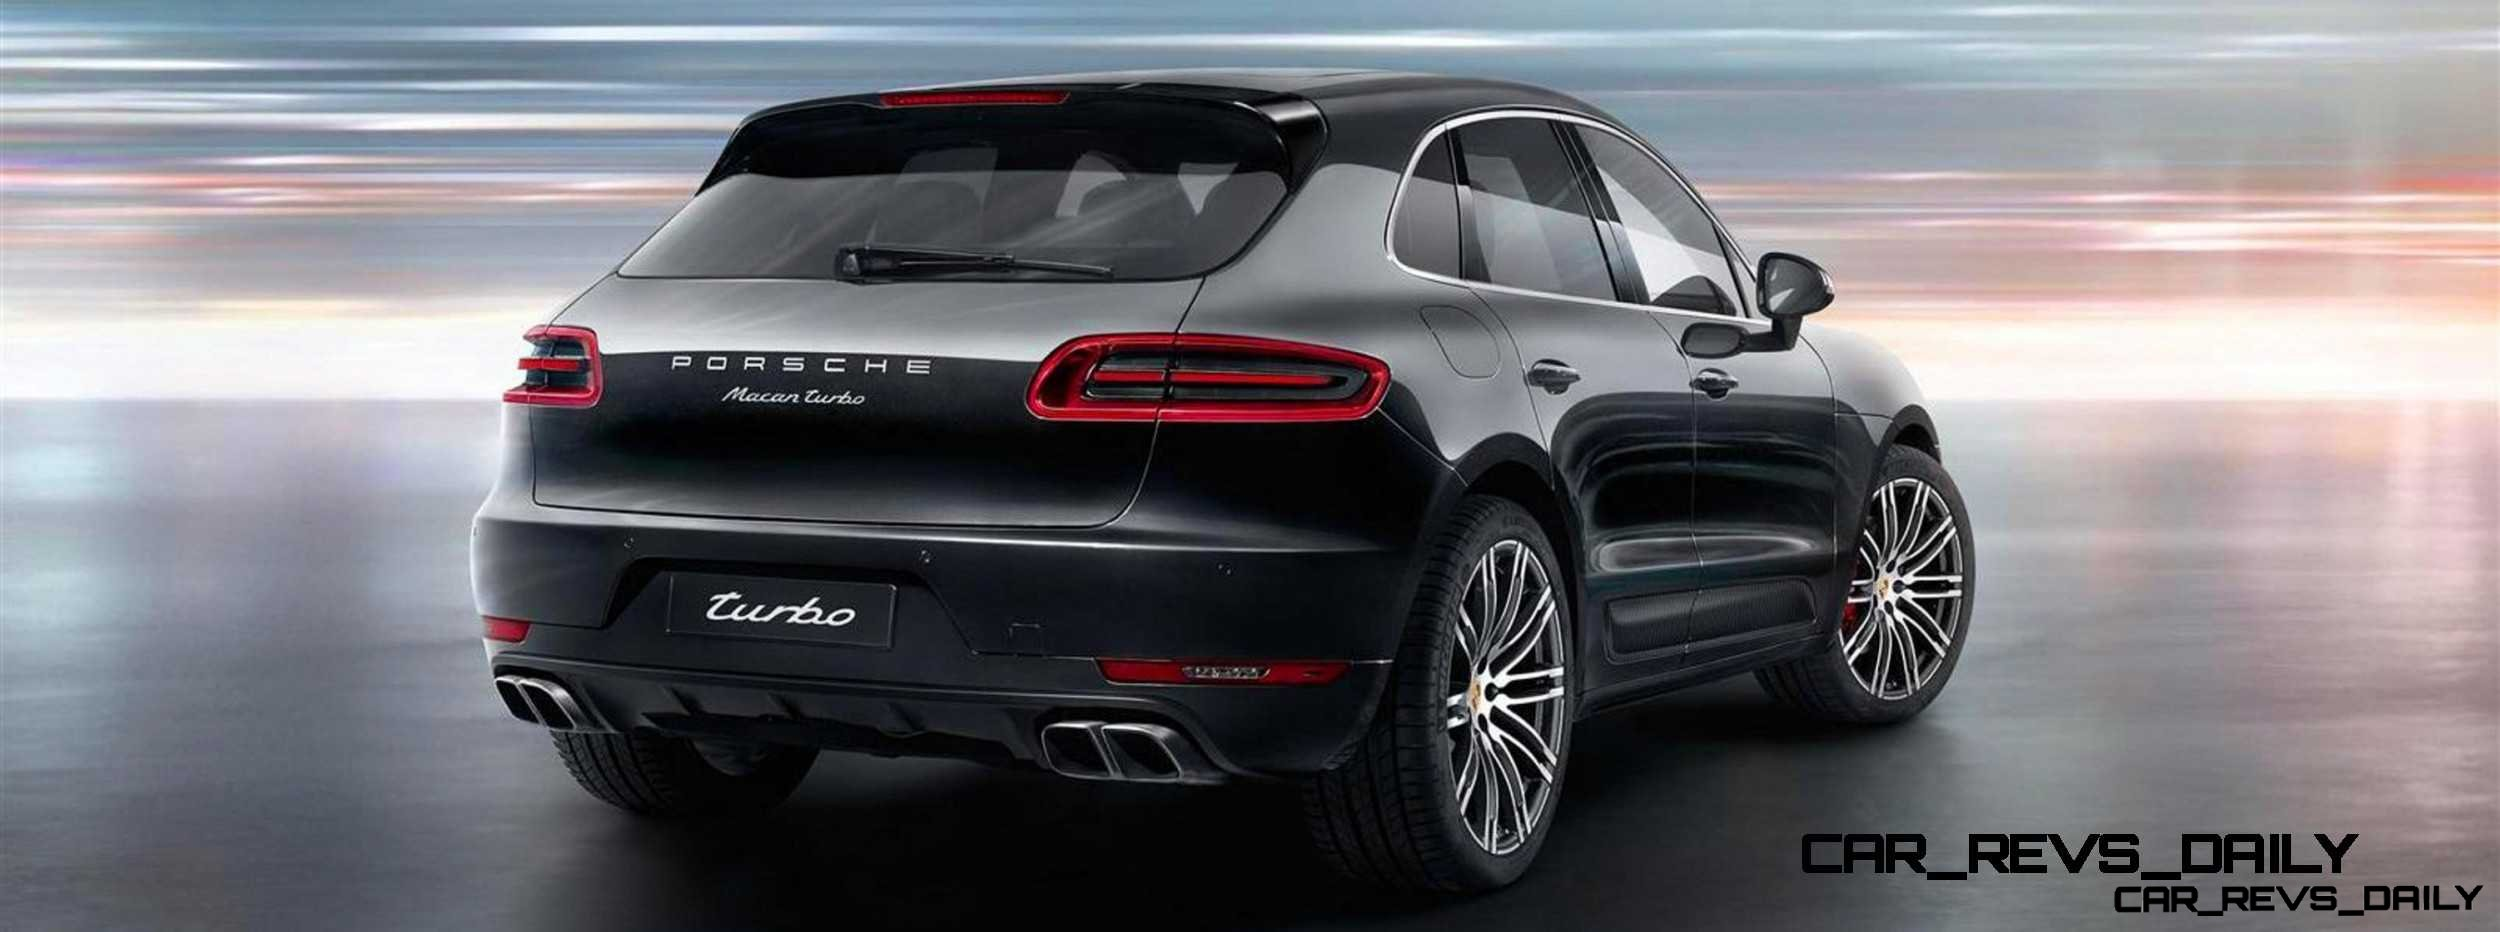 2015 Porsche Macan - Latest Images - CarRevsDaily.com 82